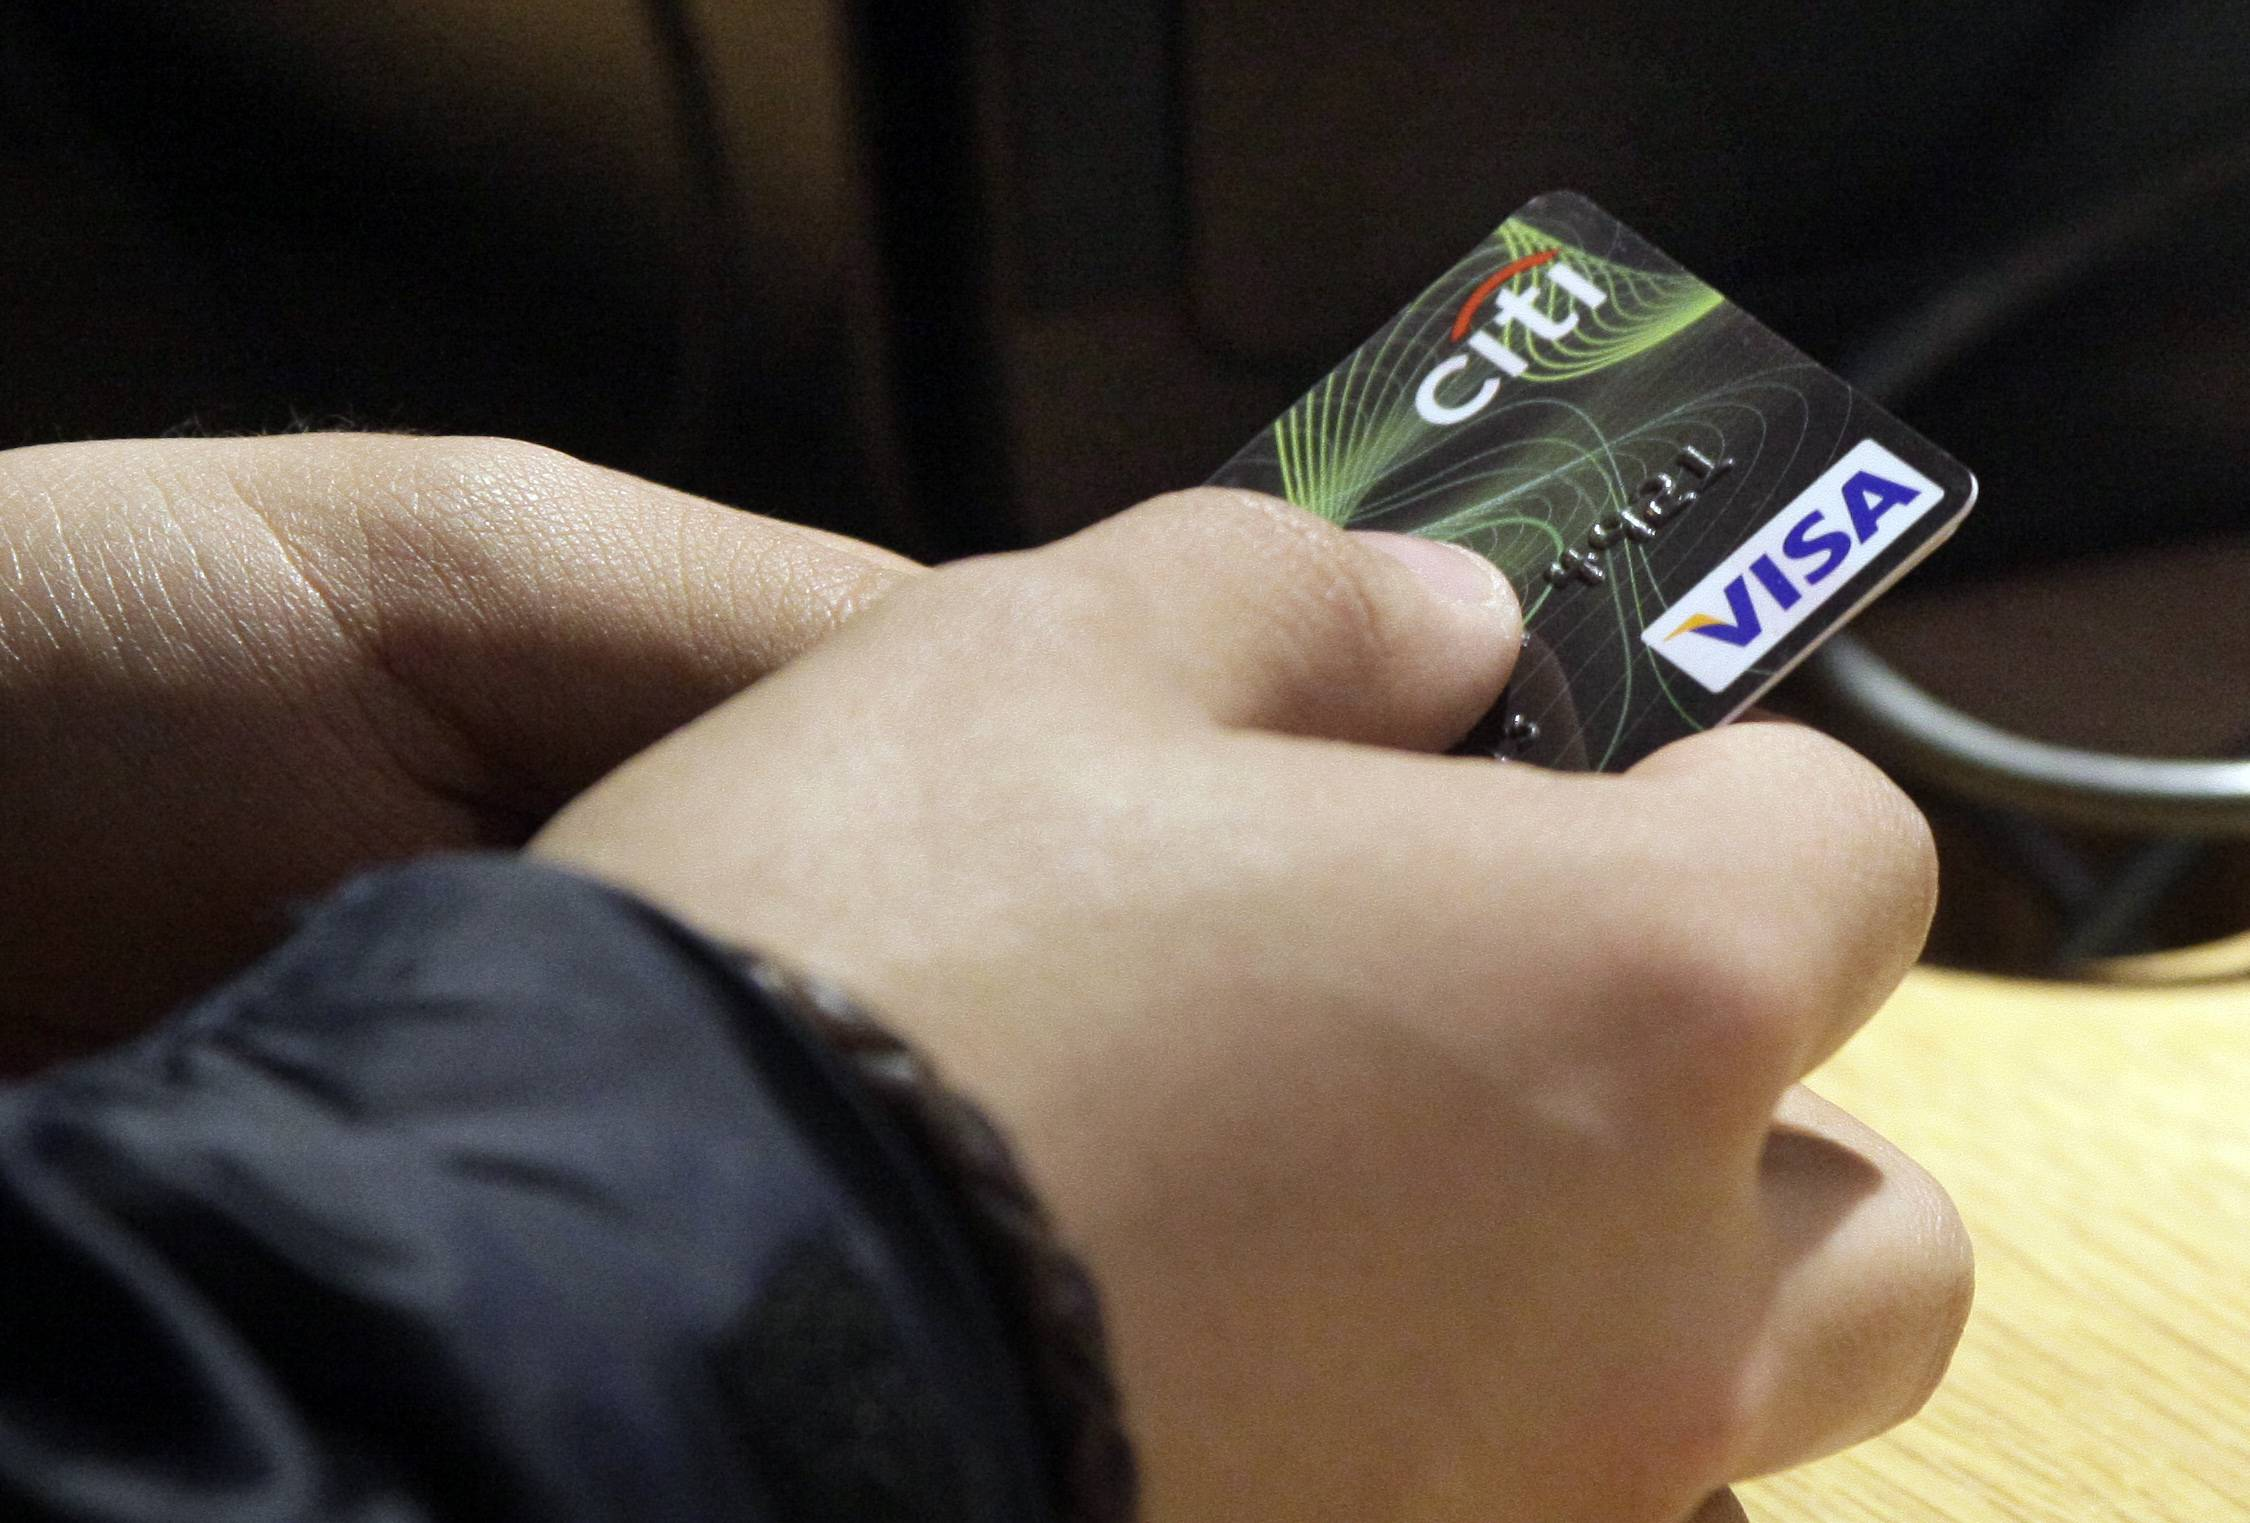 Credit card debt has basically plateaued during the recovery, according to analysis.